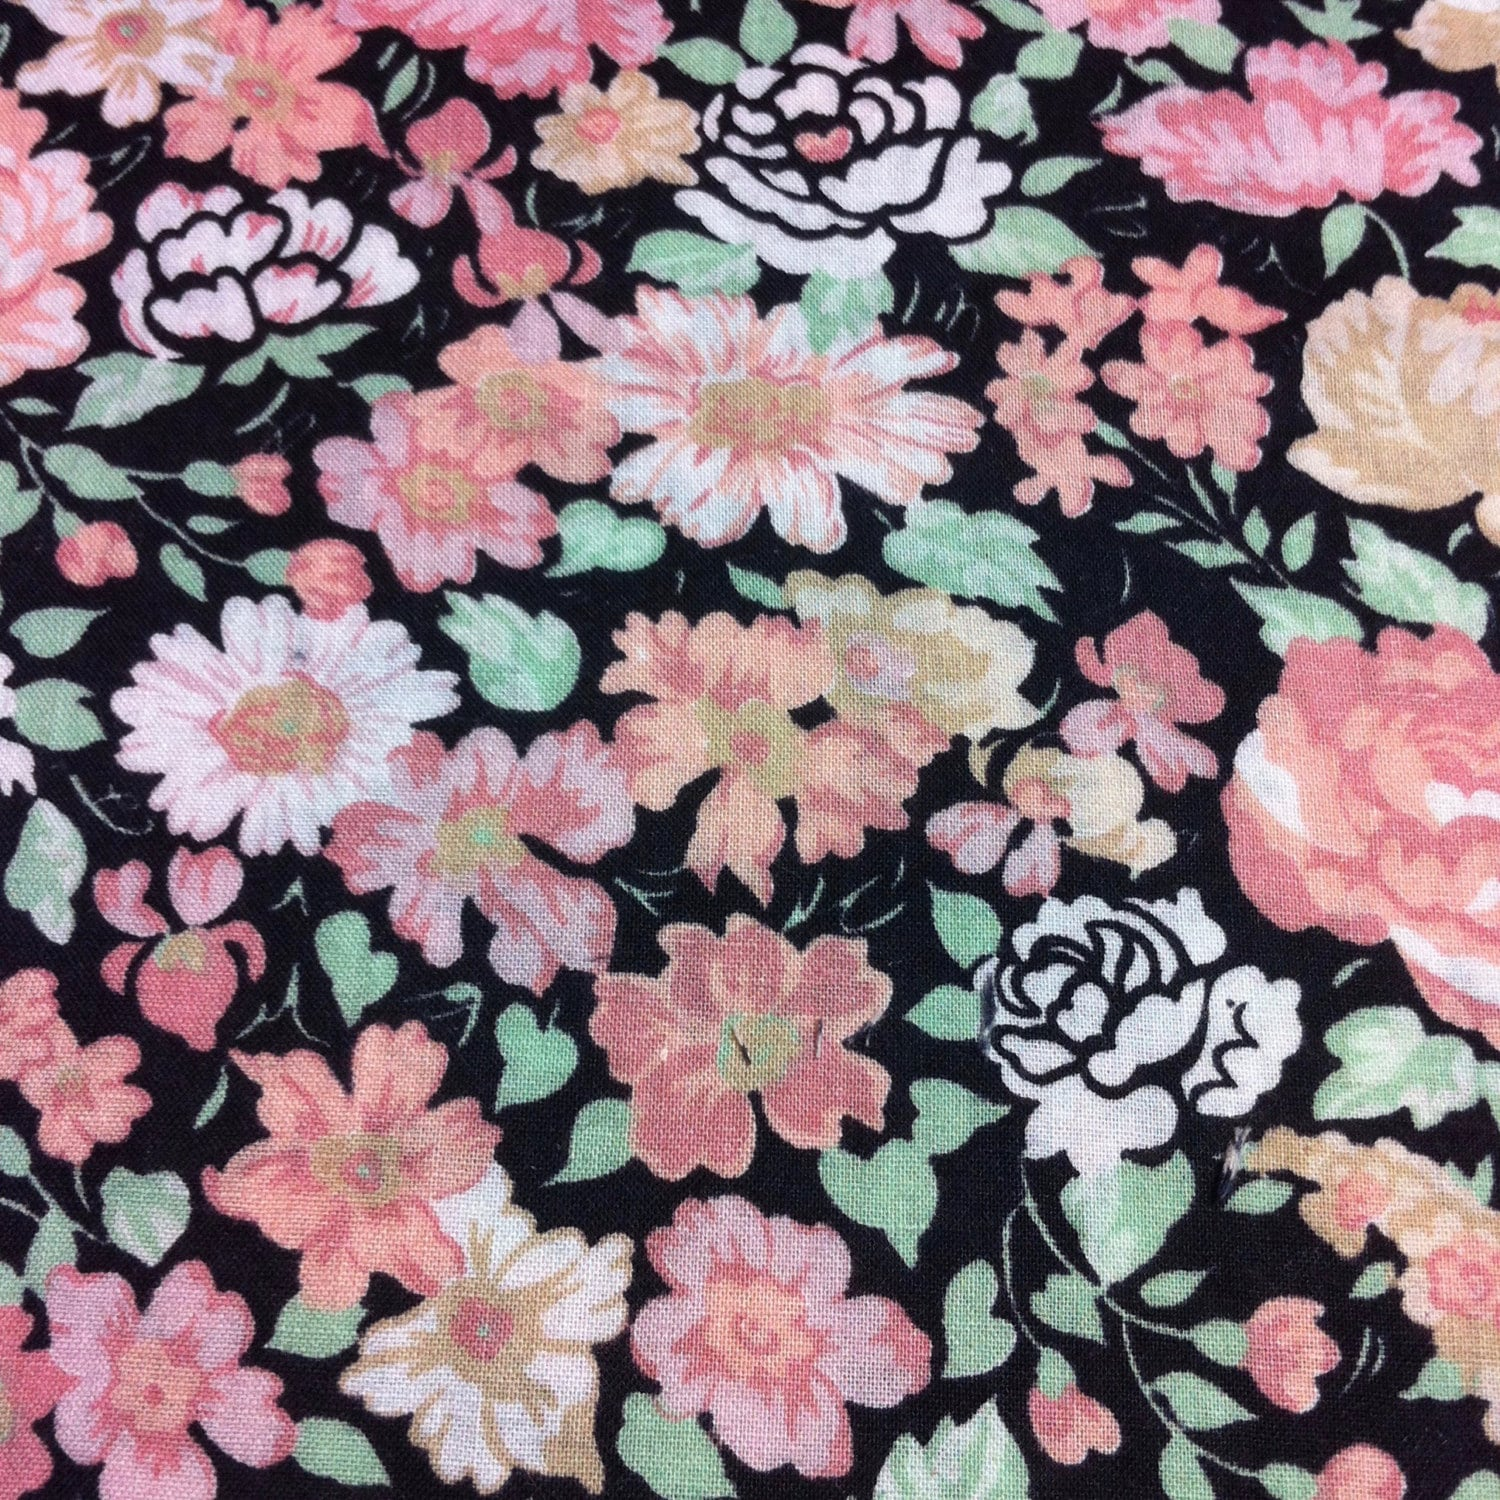 Vintage 80s Pastel Pink And Black Floral Print Fabric 1 Yard Etsy